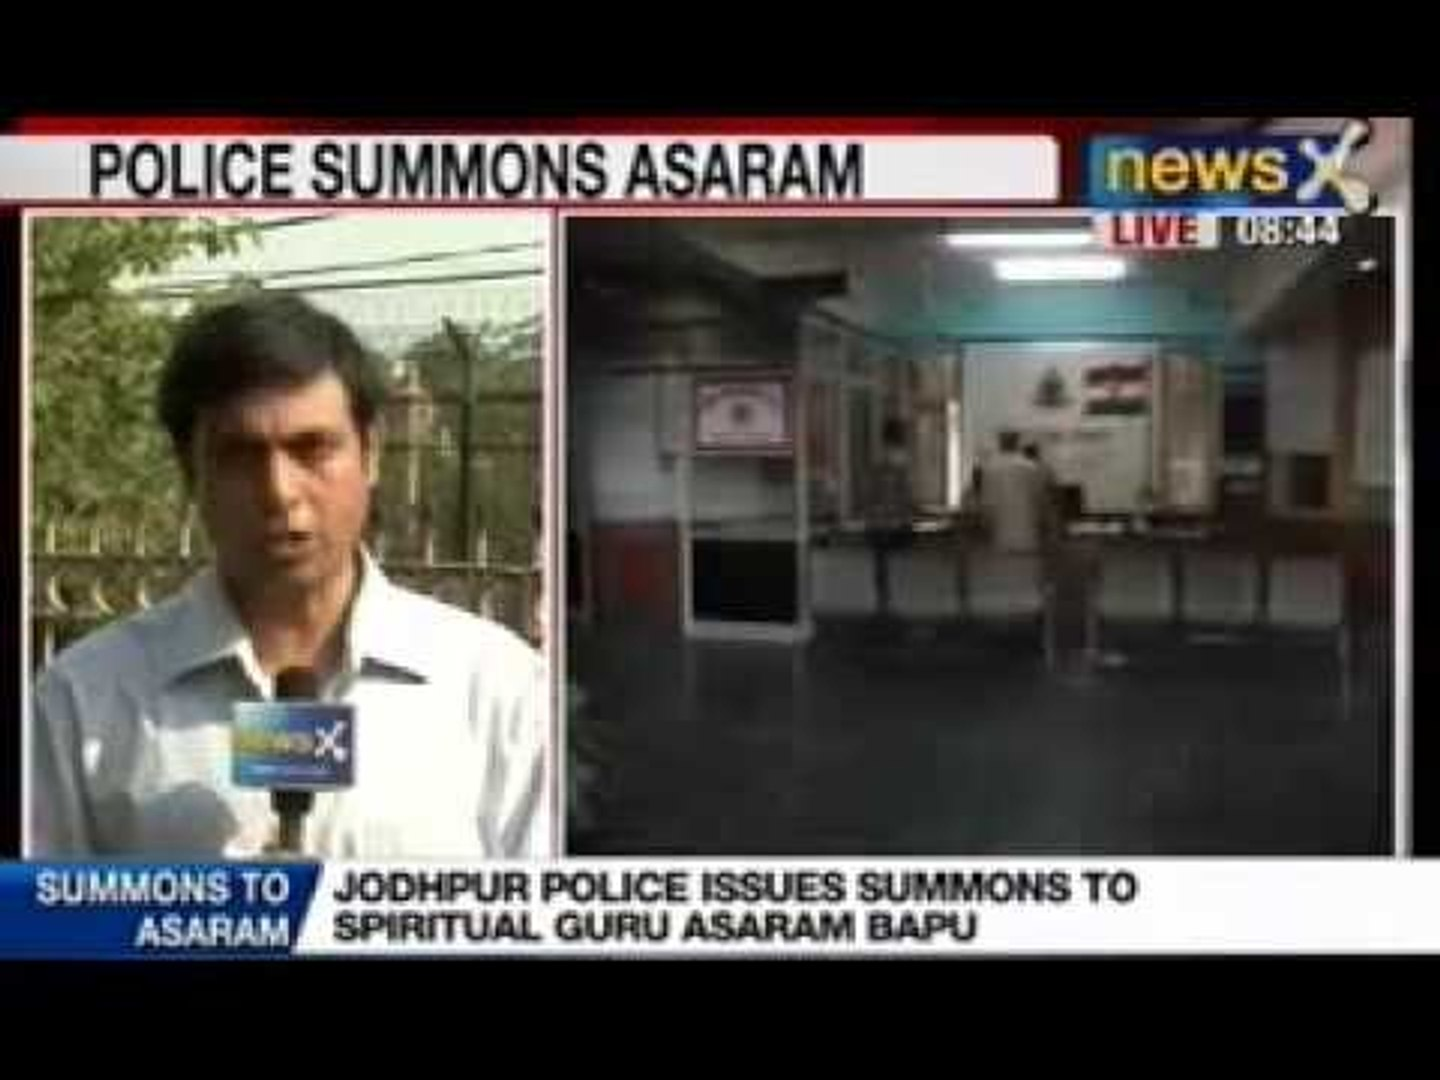 News X: Jodhpur Police issues summons to spiritual Guru Asaram Bapu